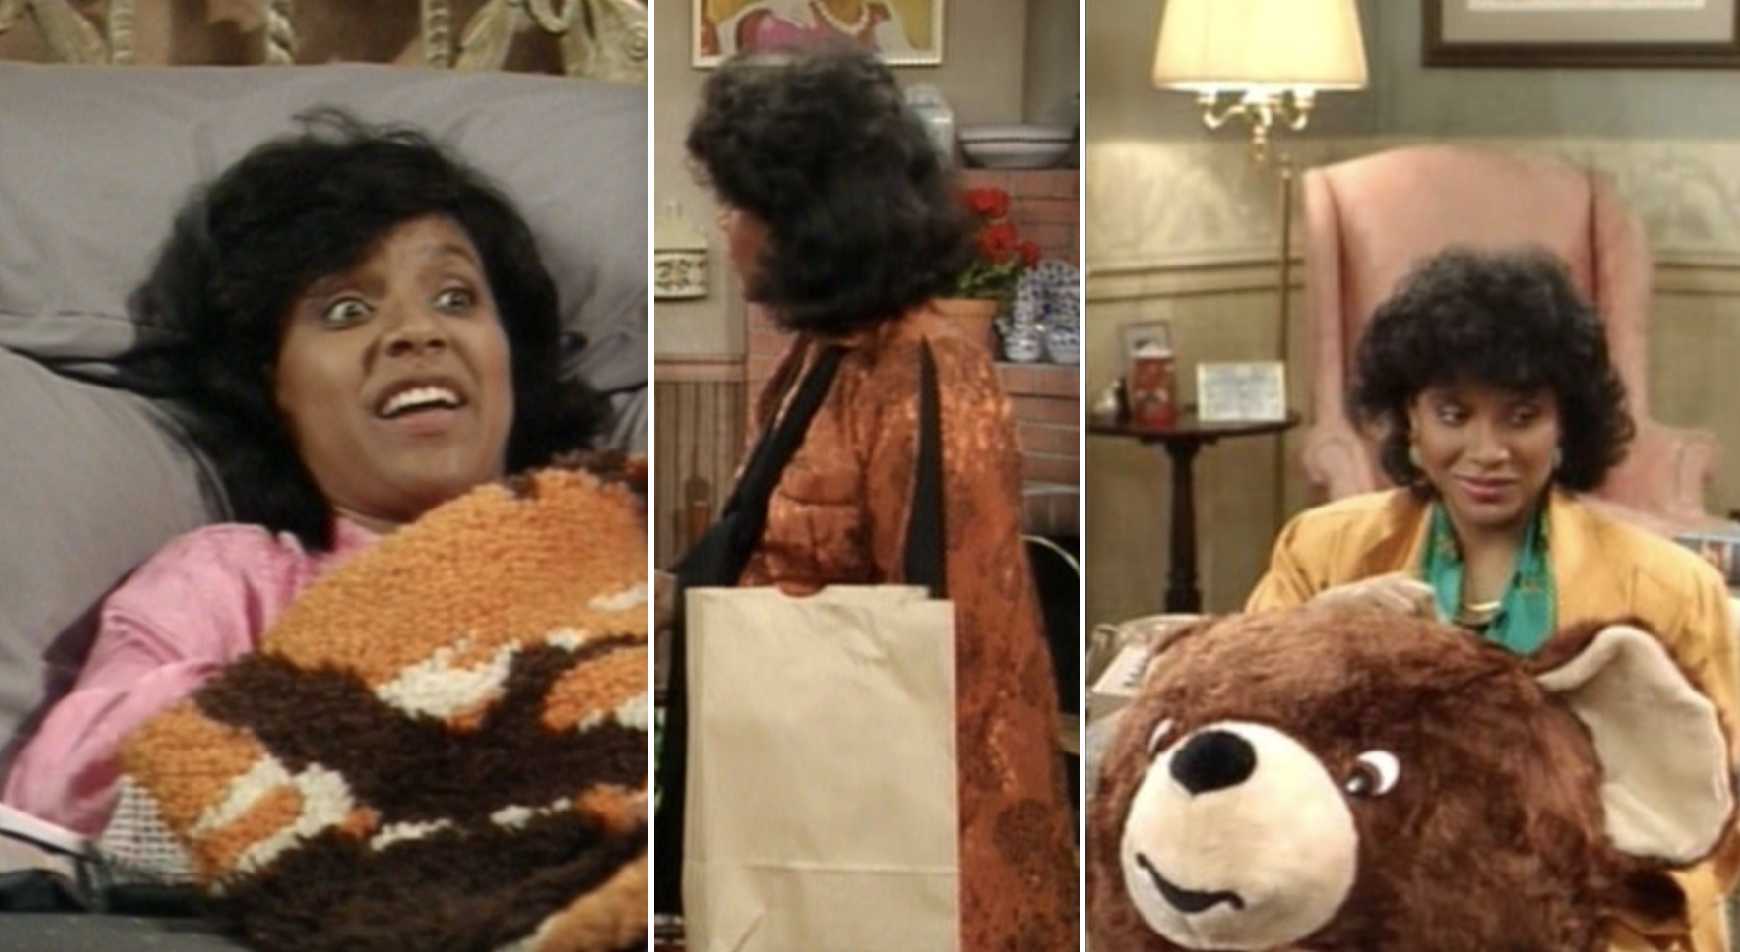 Phylicia Rashad carrying a giant stuffed bear